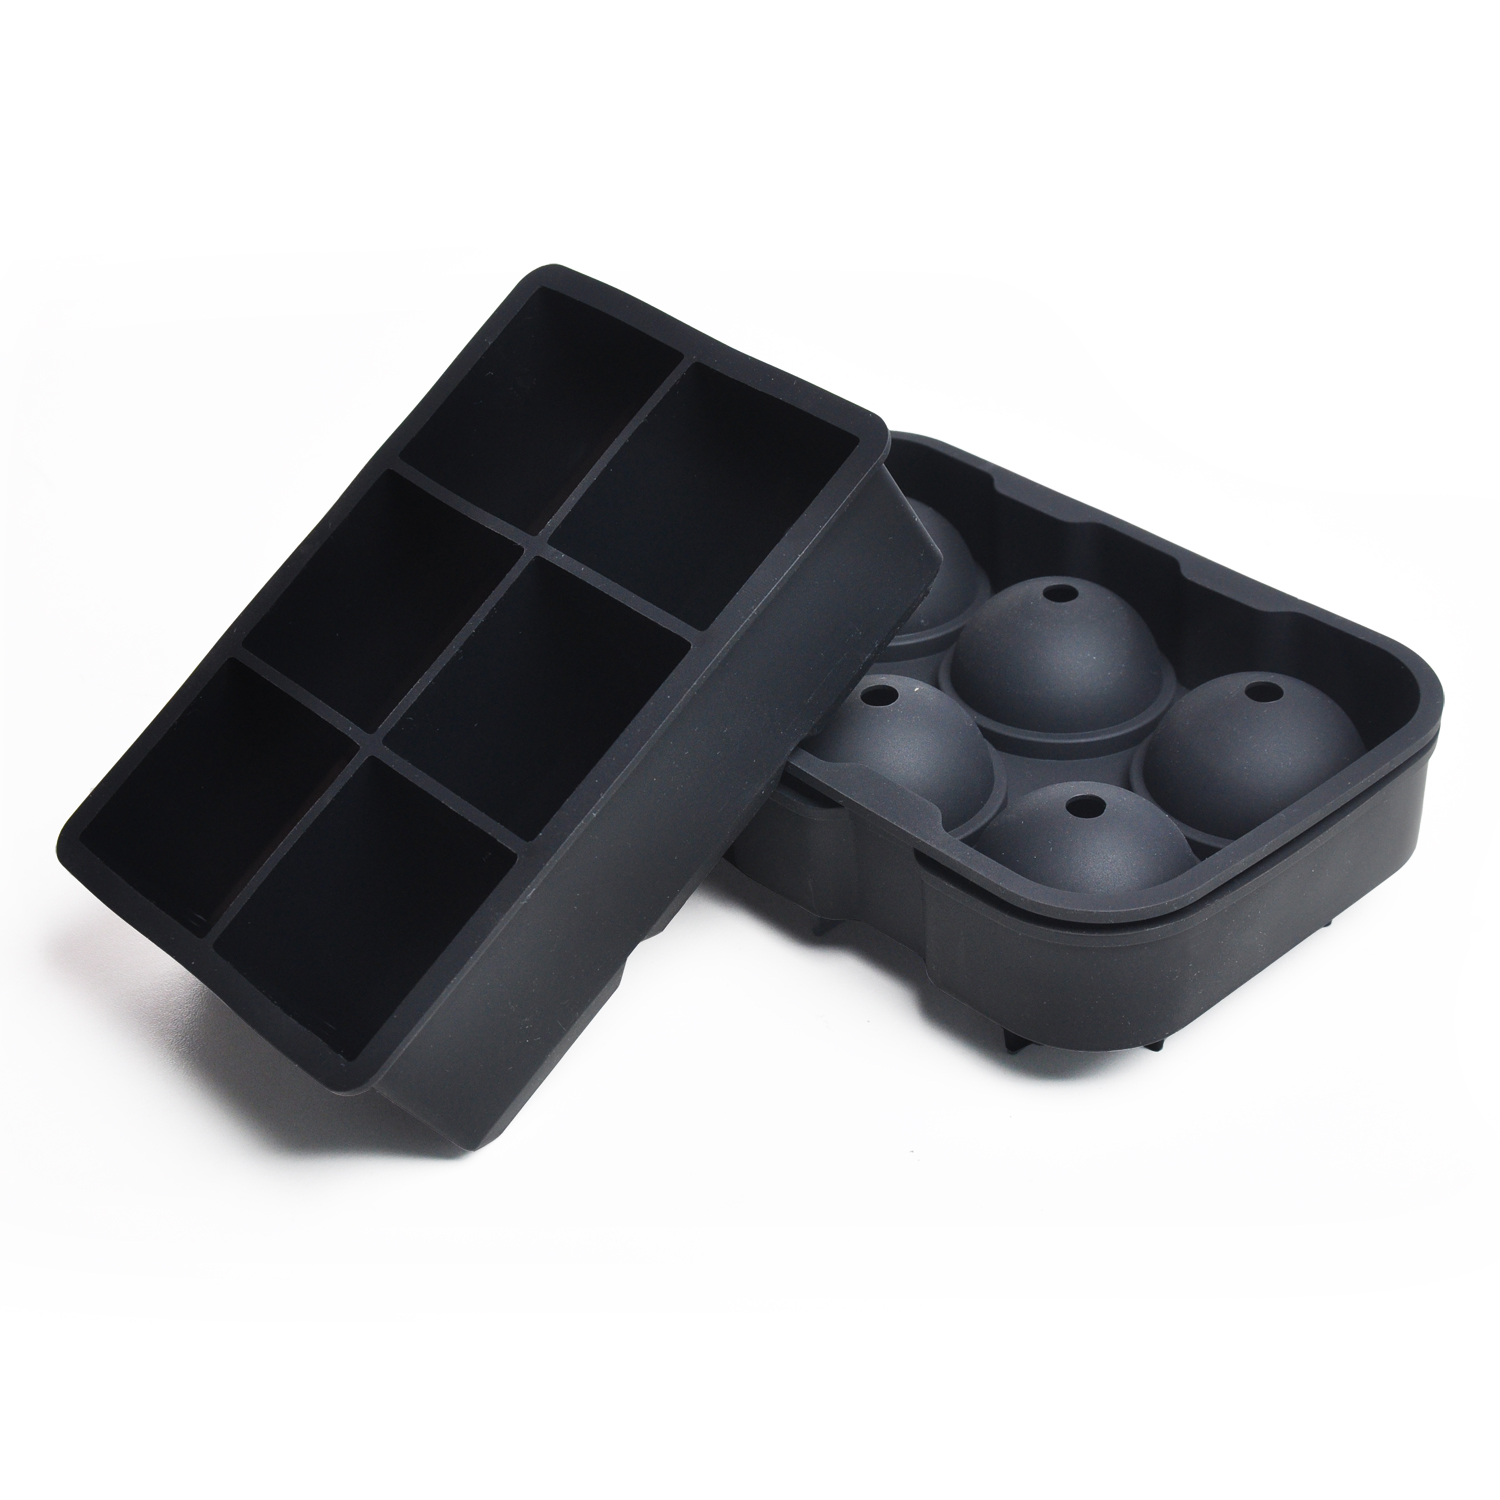 Renjia ice tray death silicone ice ball and silicone ice cube tray